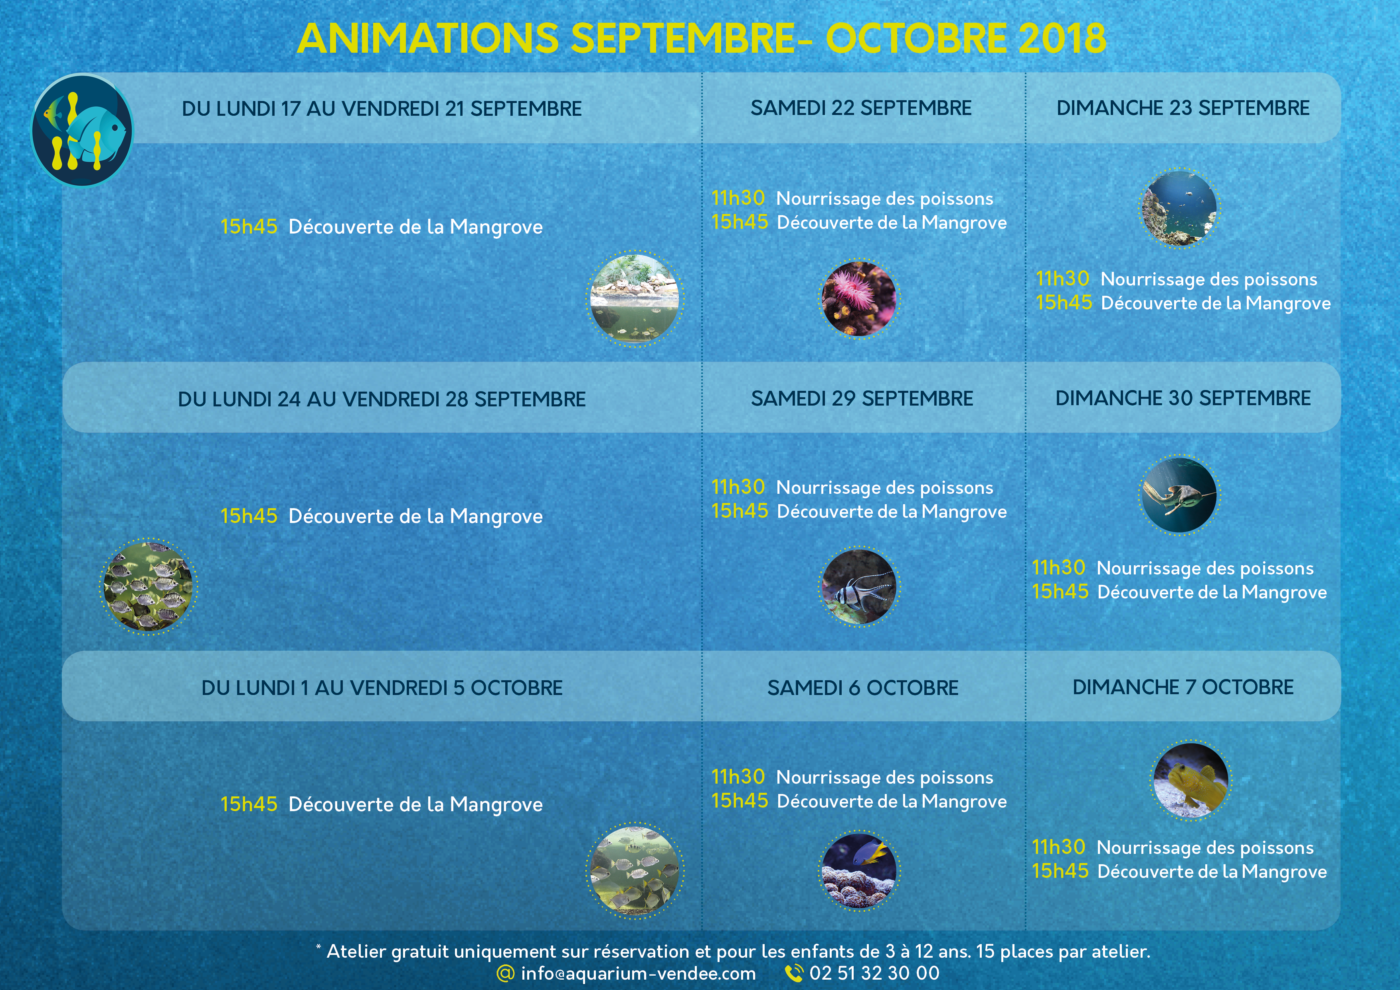 ANIMATIONS 17 SEPT-7 OCT SANS PROMO